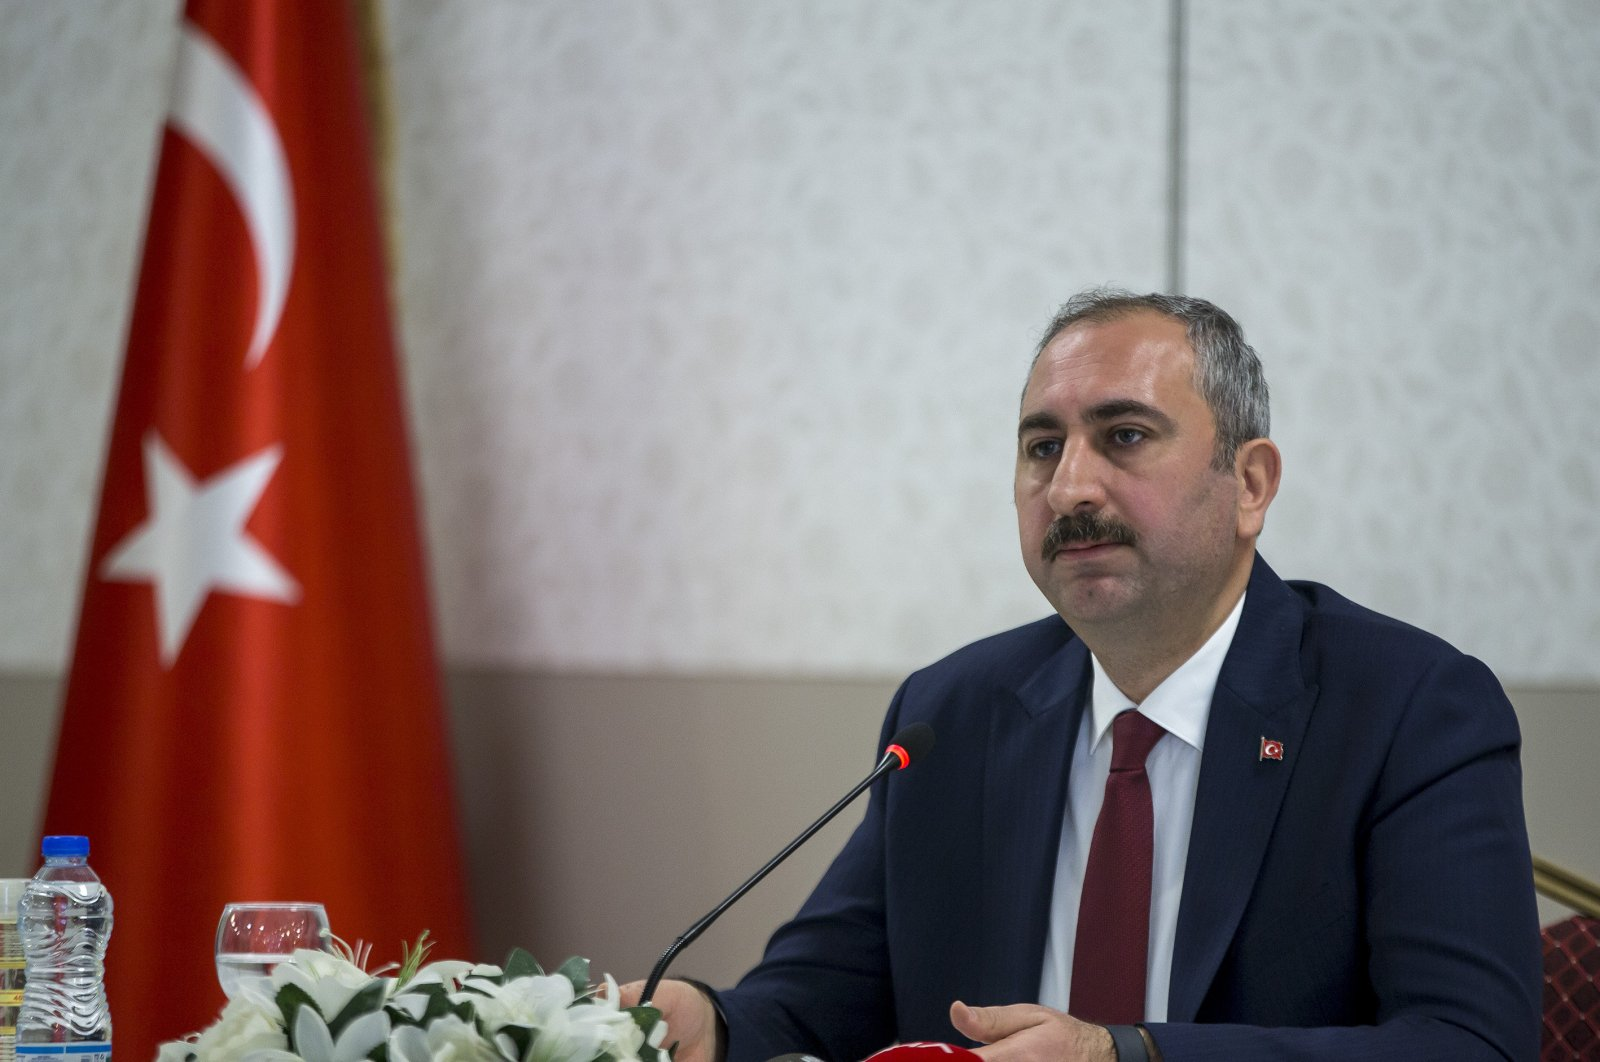 Justice Minister Abdülhamit Gül speaks to reporters in a news conference on May 4, 2020 (AA File Photo)